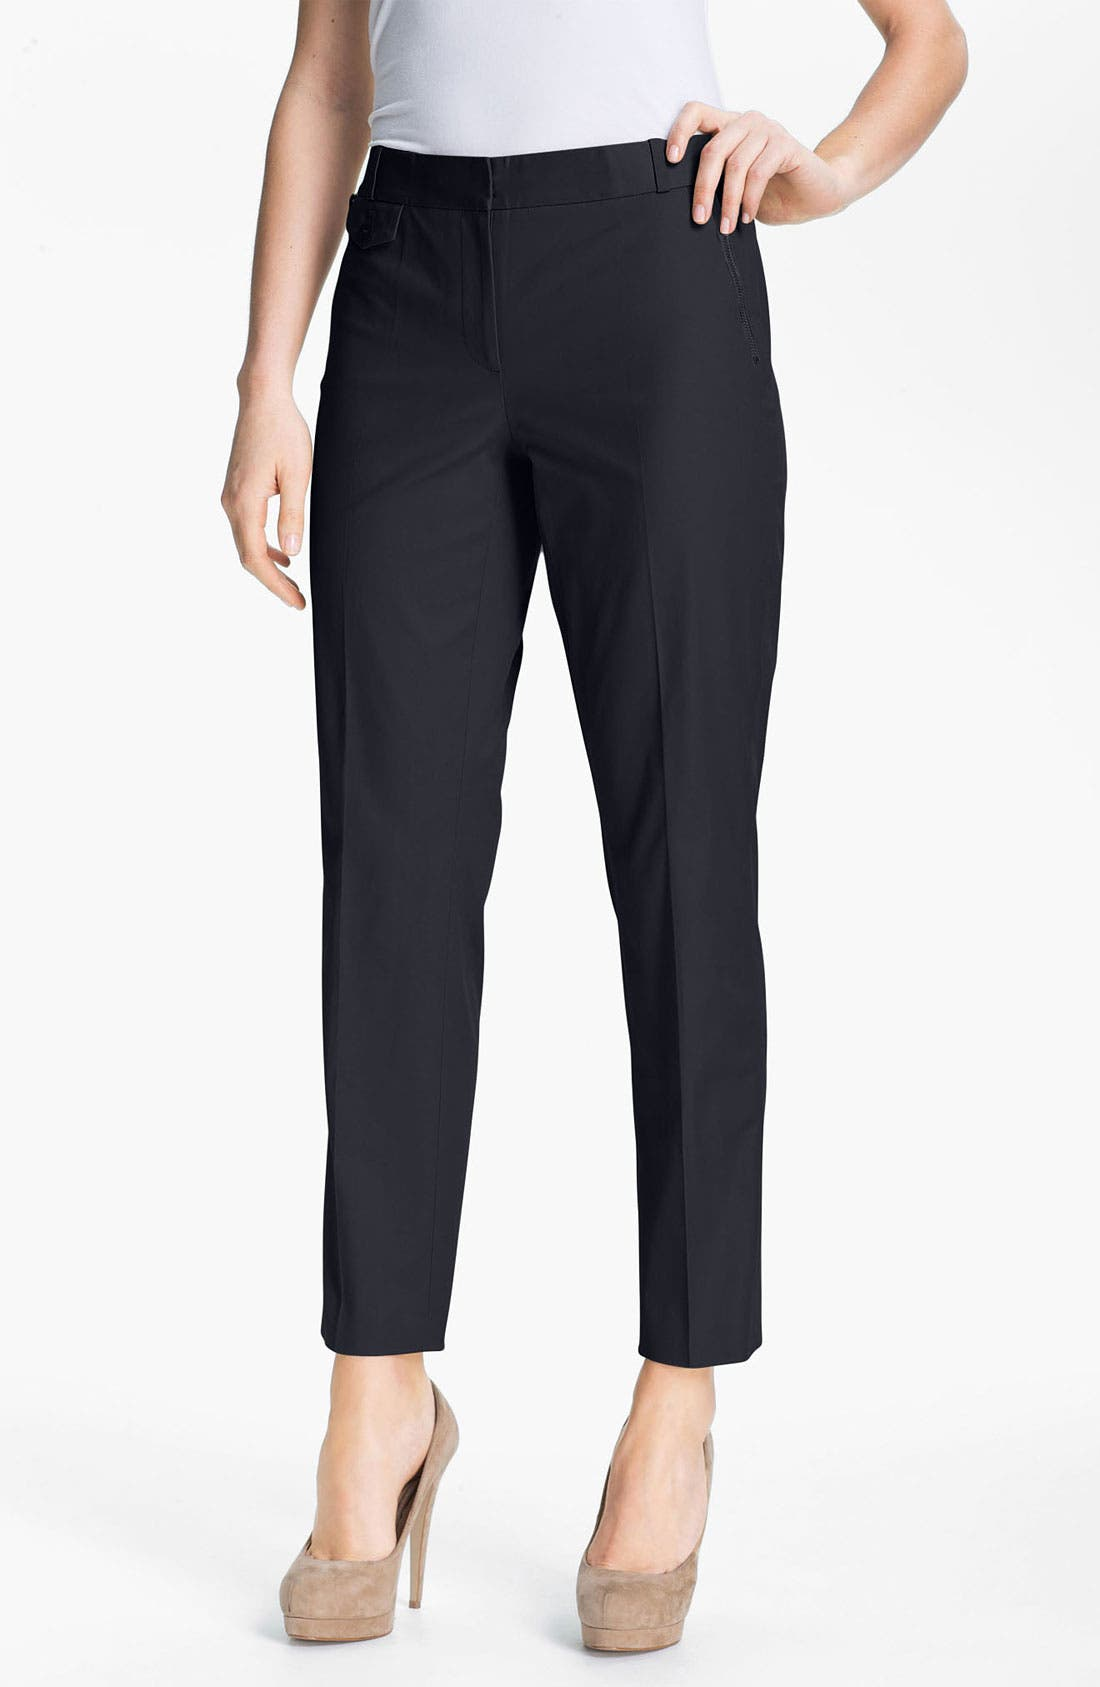 Alternate Image 1 Selected - Classiques Entier® 'New Chicca' Ankle Pants